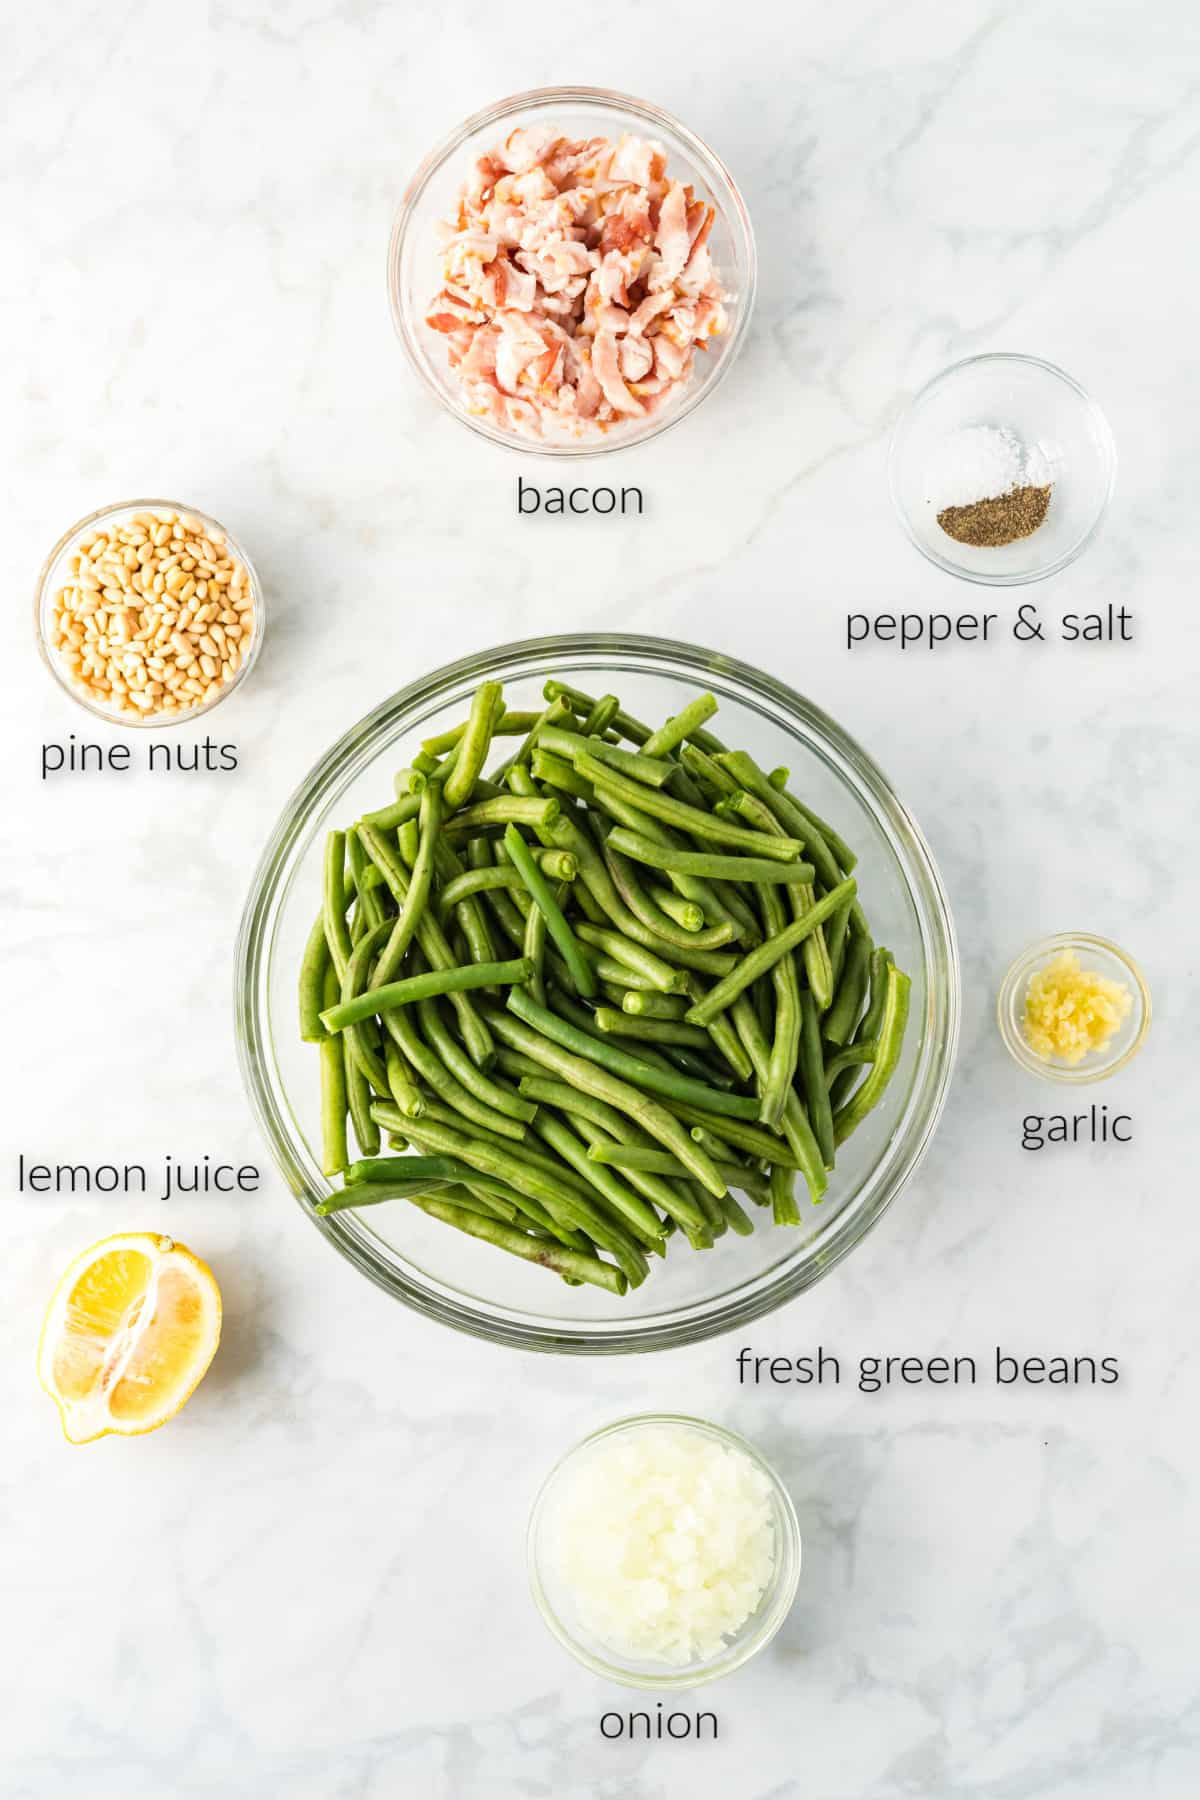 ingredients for making a green bean side dish.